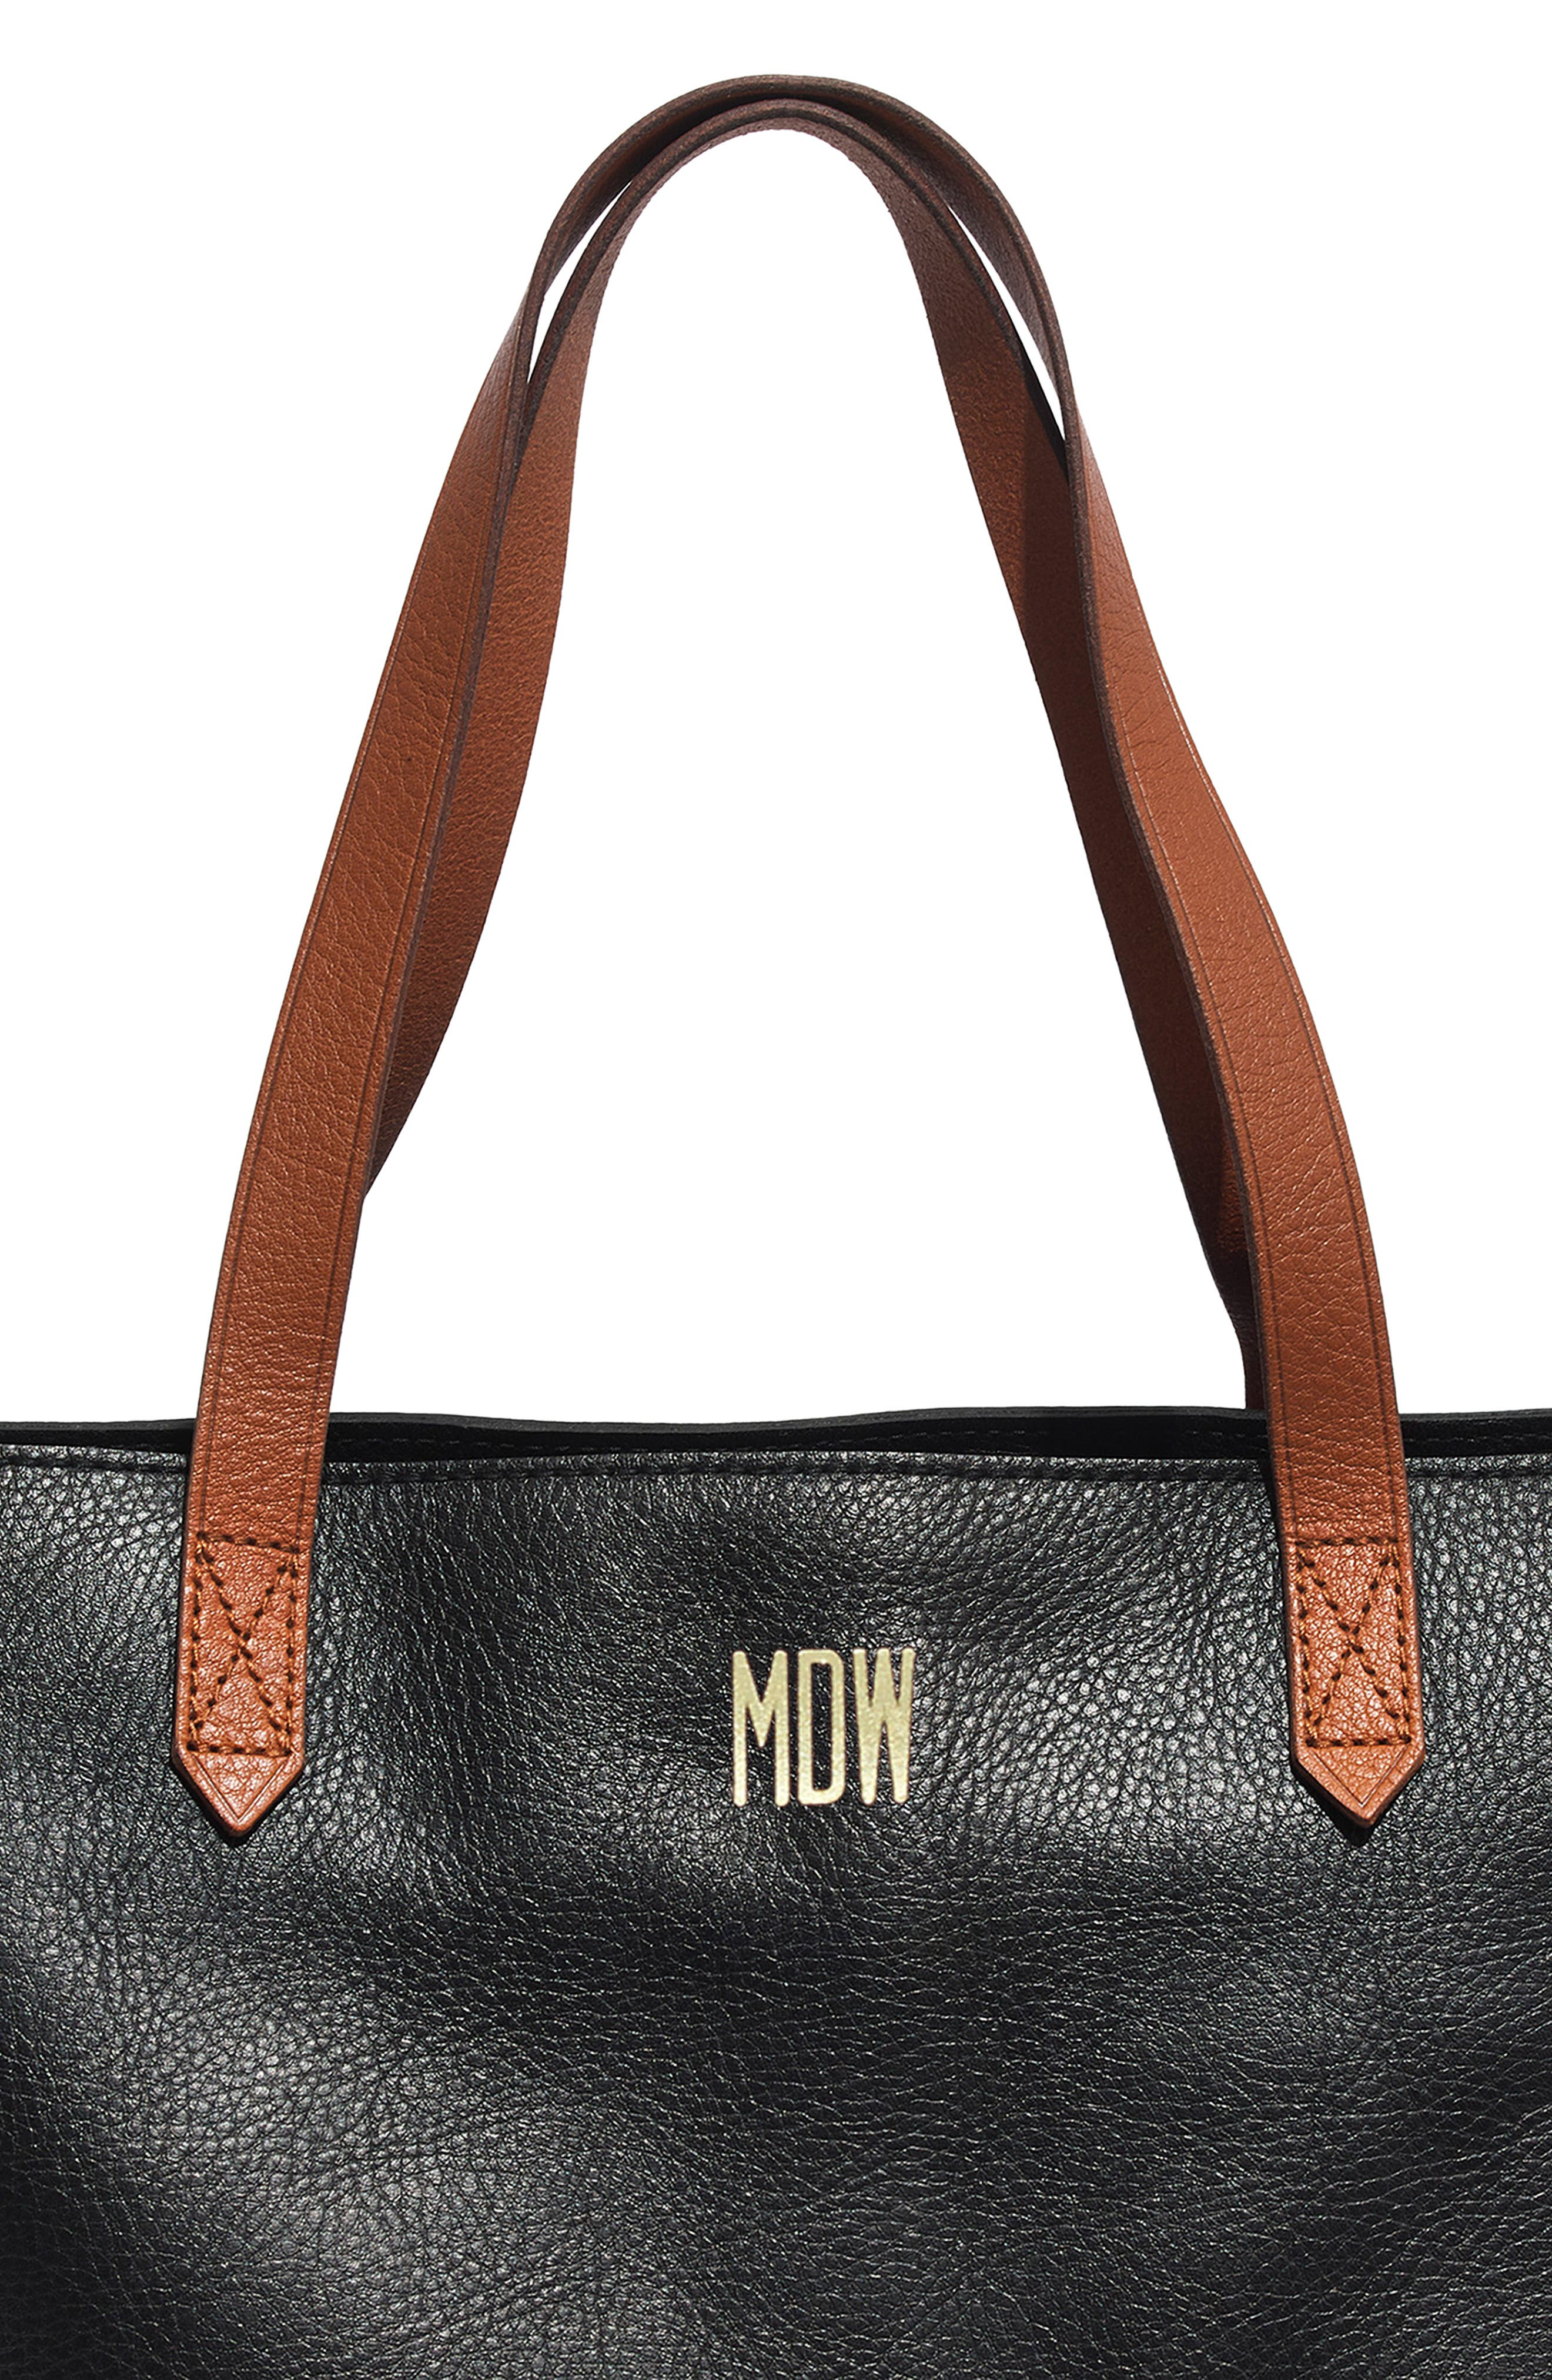 MADEWELL, Zip Top Transport Leather Tote, Alternate thumbnail 9, color, TRUE BLACK W/ BROWN